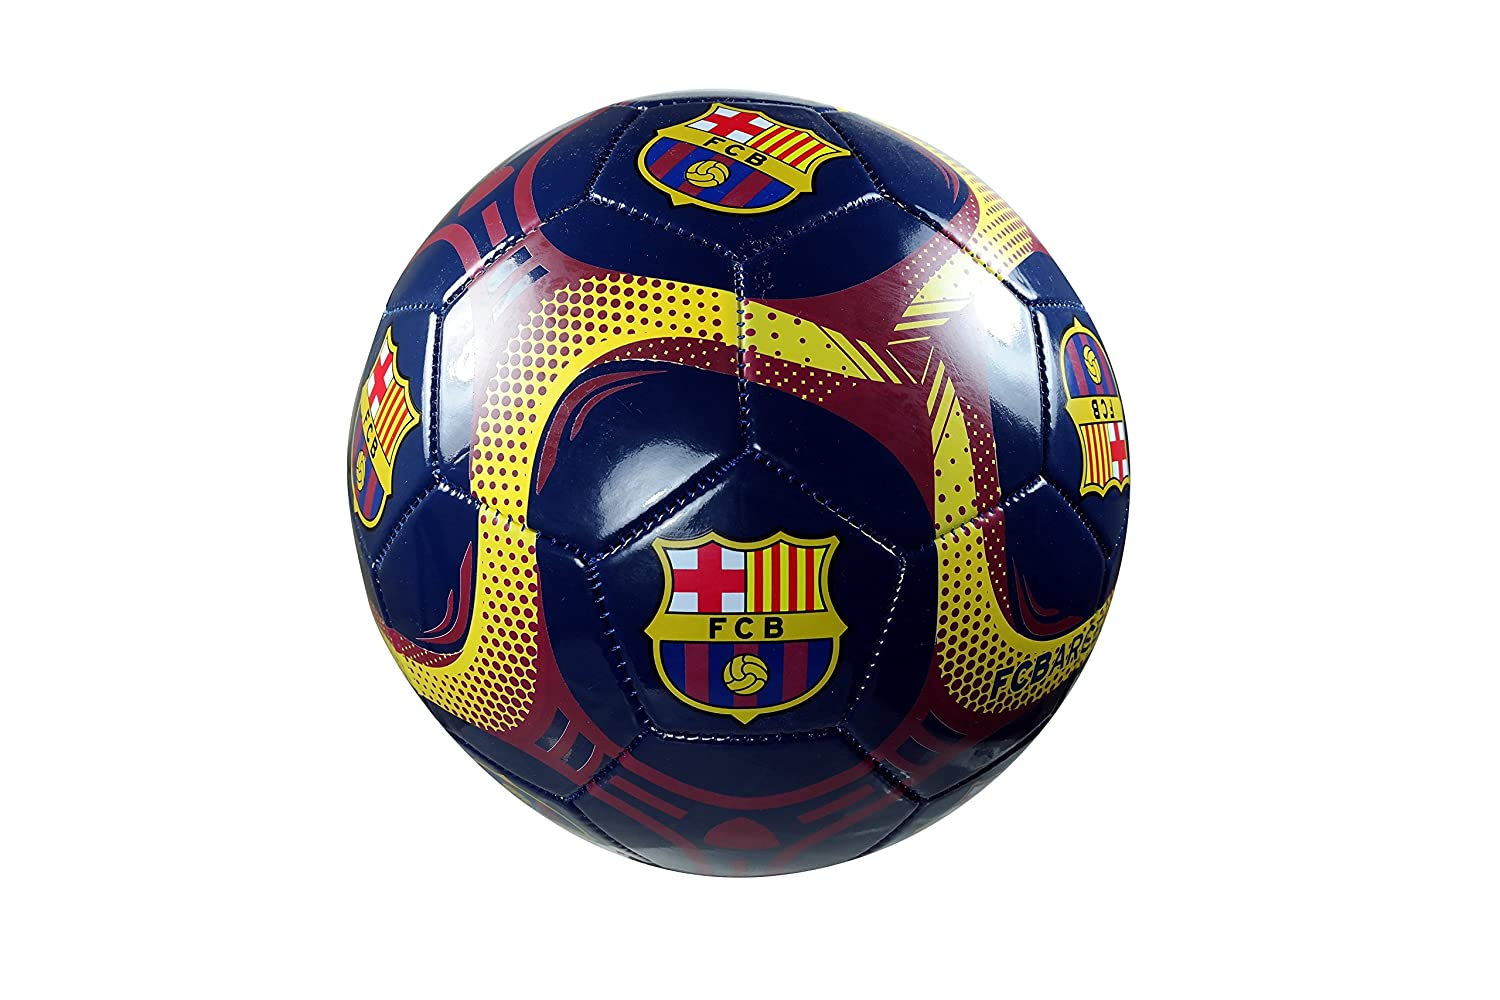 FC Barcelona Authentic Official Licensedサッカーボールサイズ5 – 06 – 7 B076V7HX3D